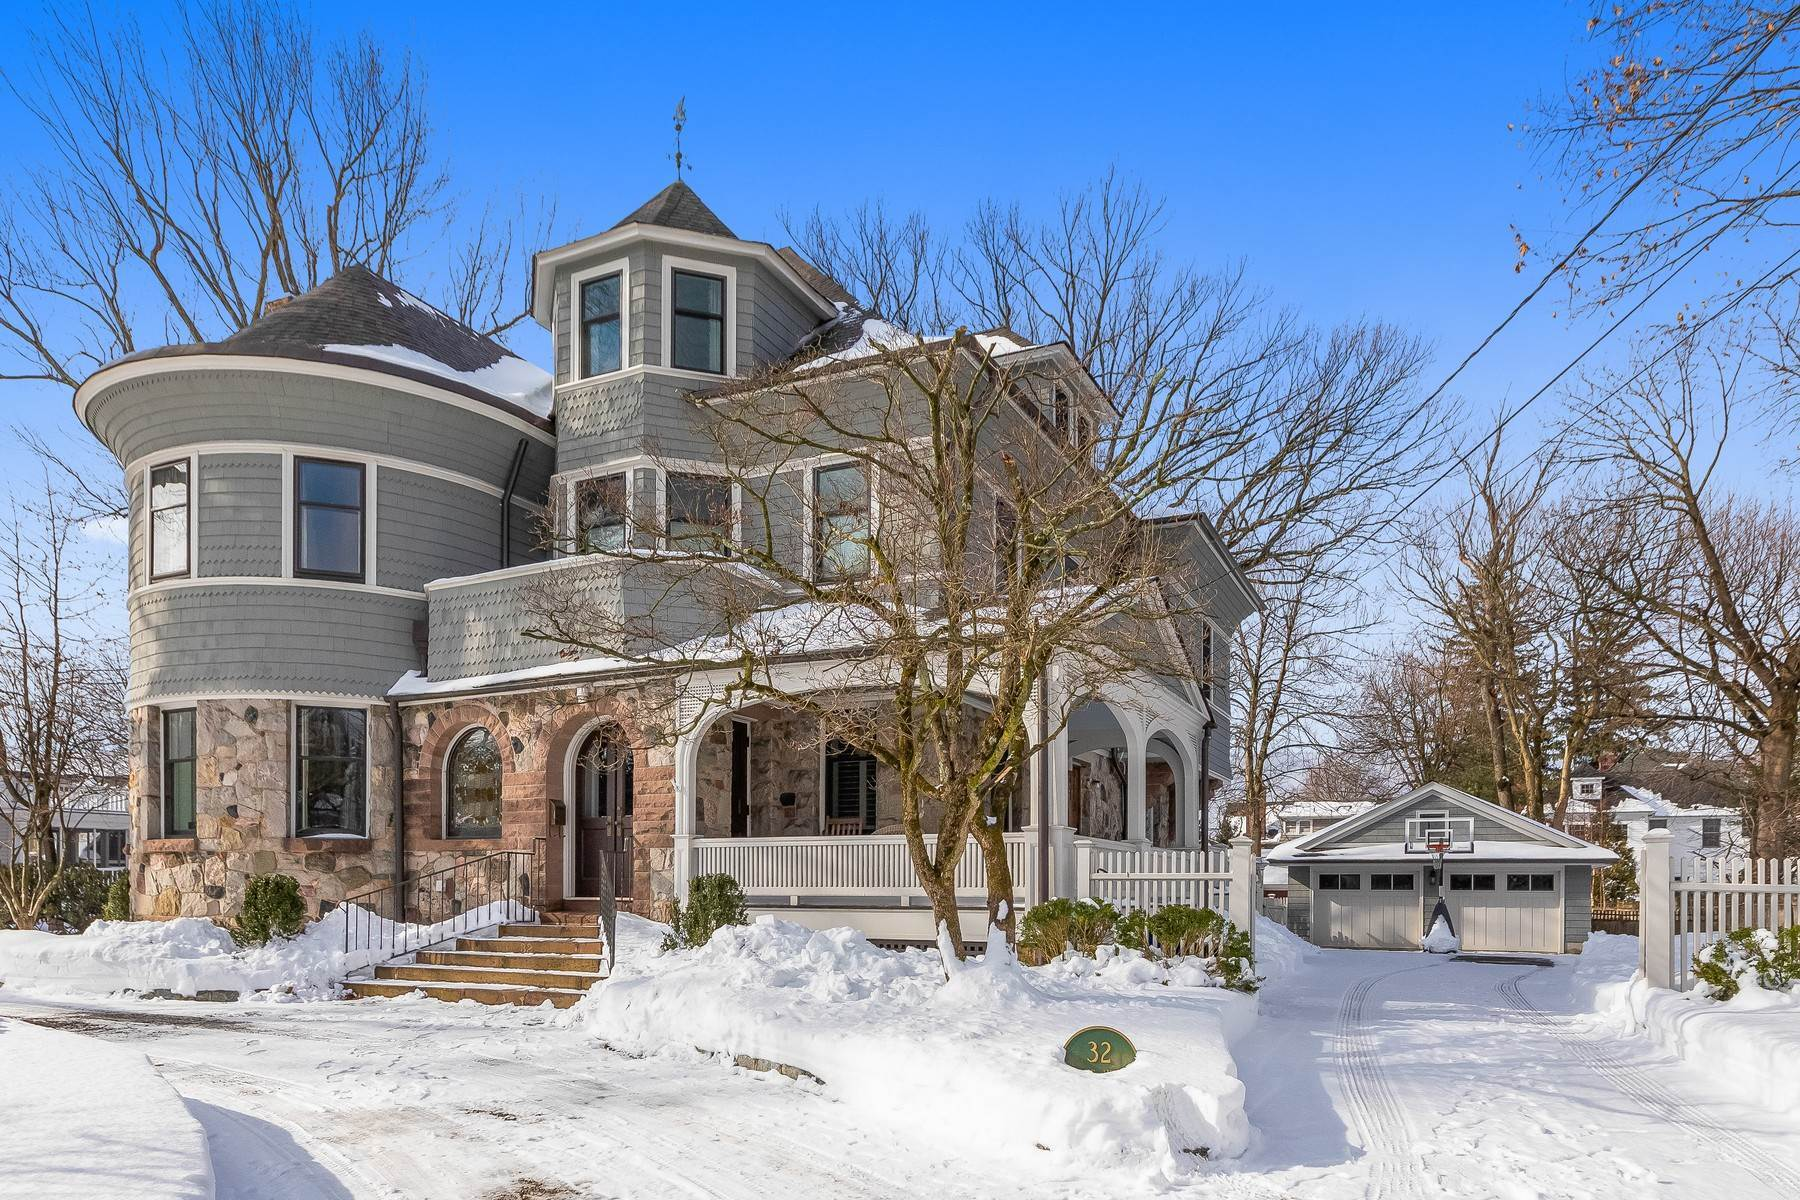 Single Family Homes for Sale at Stunning Victorian In The Heart Of Summit 32 Hobart Avenue Summit, New Jersey 07901 United States